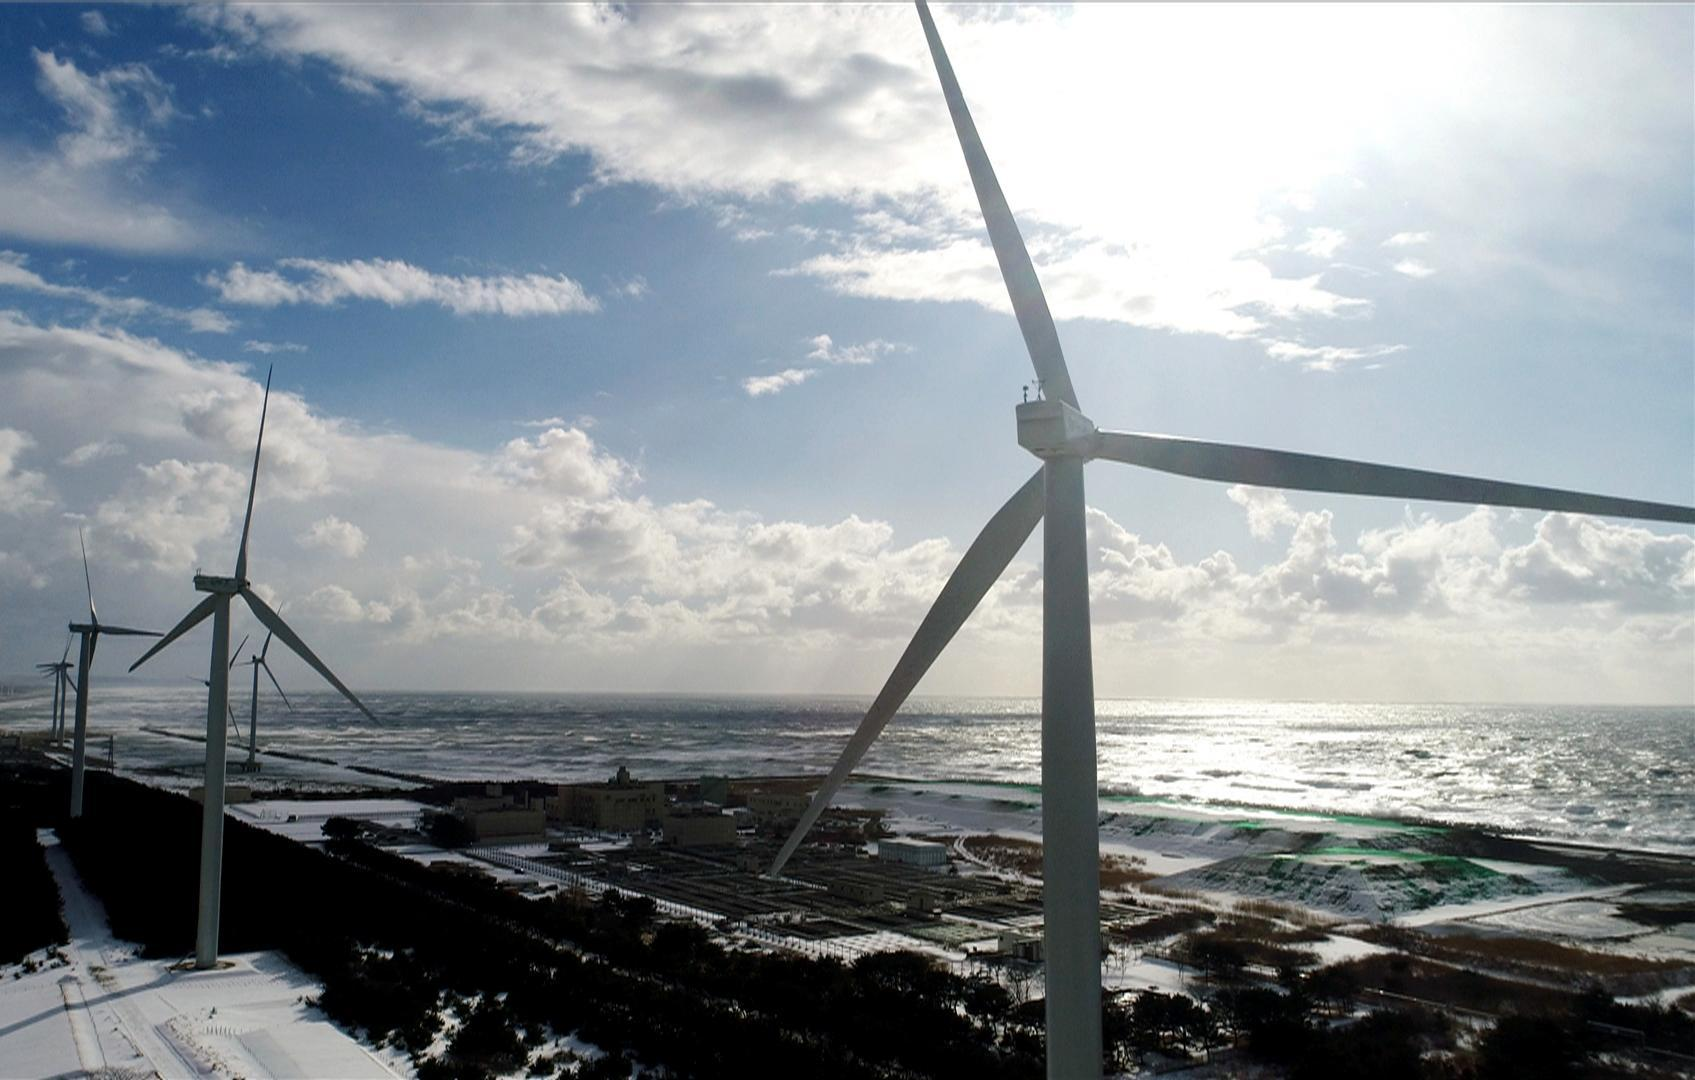 Nippon Paper Industries Holds Completion Ceremony For Wind Power Generation Facility